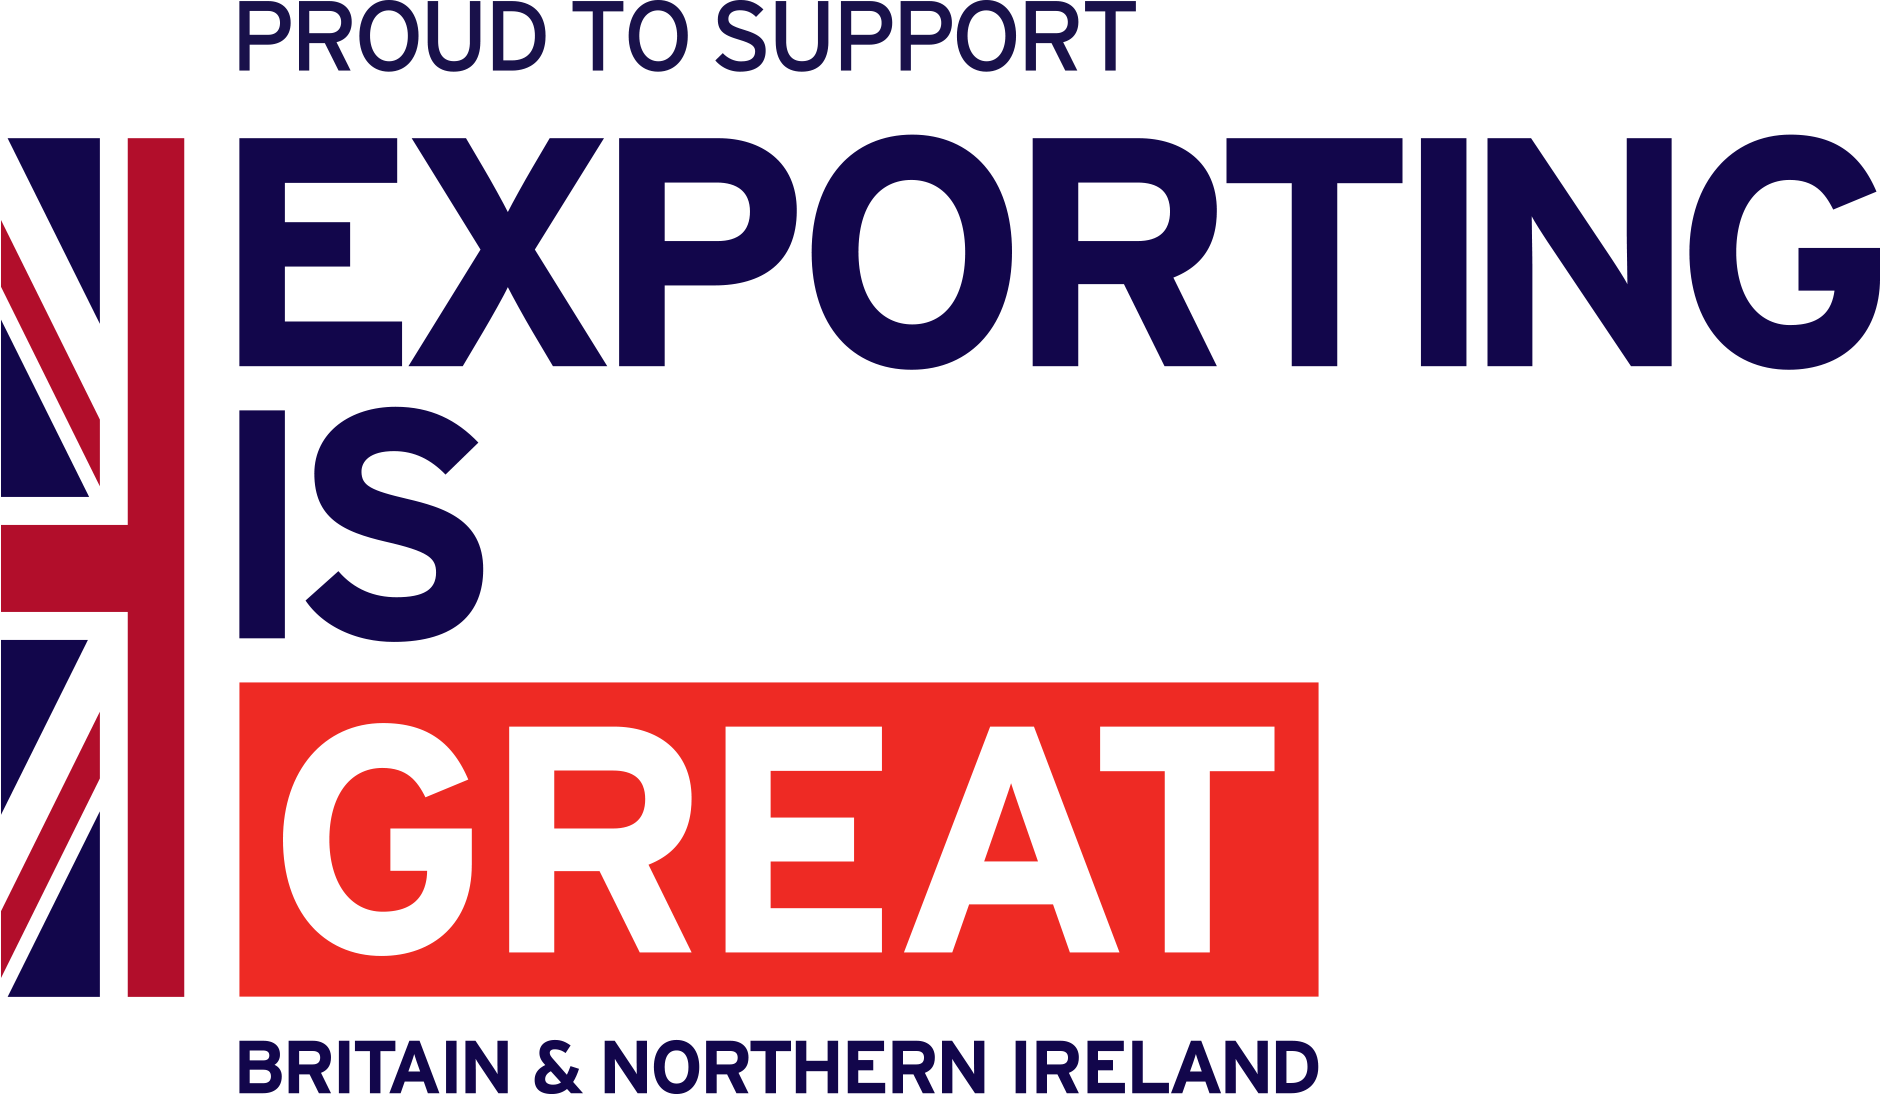 Proud to support exporting